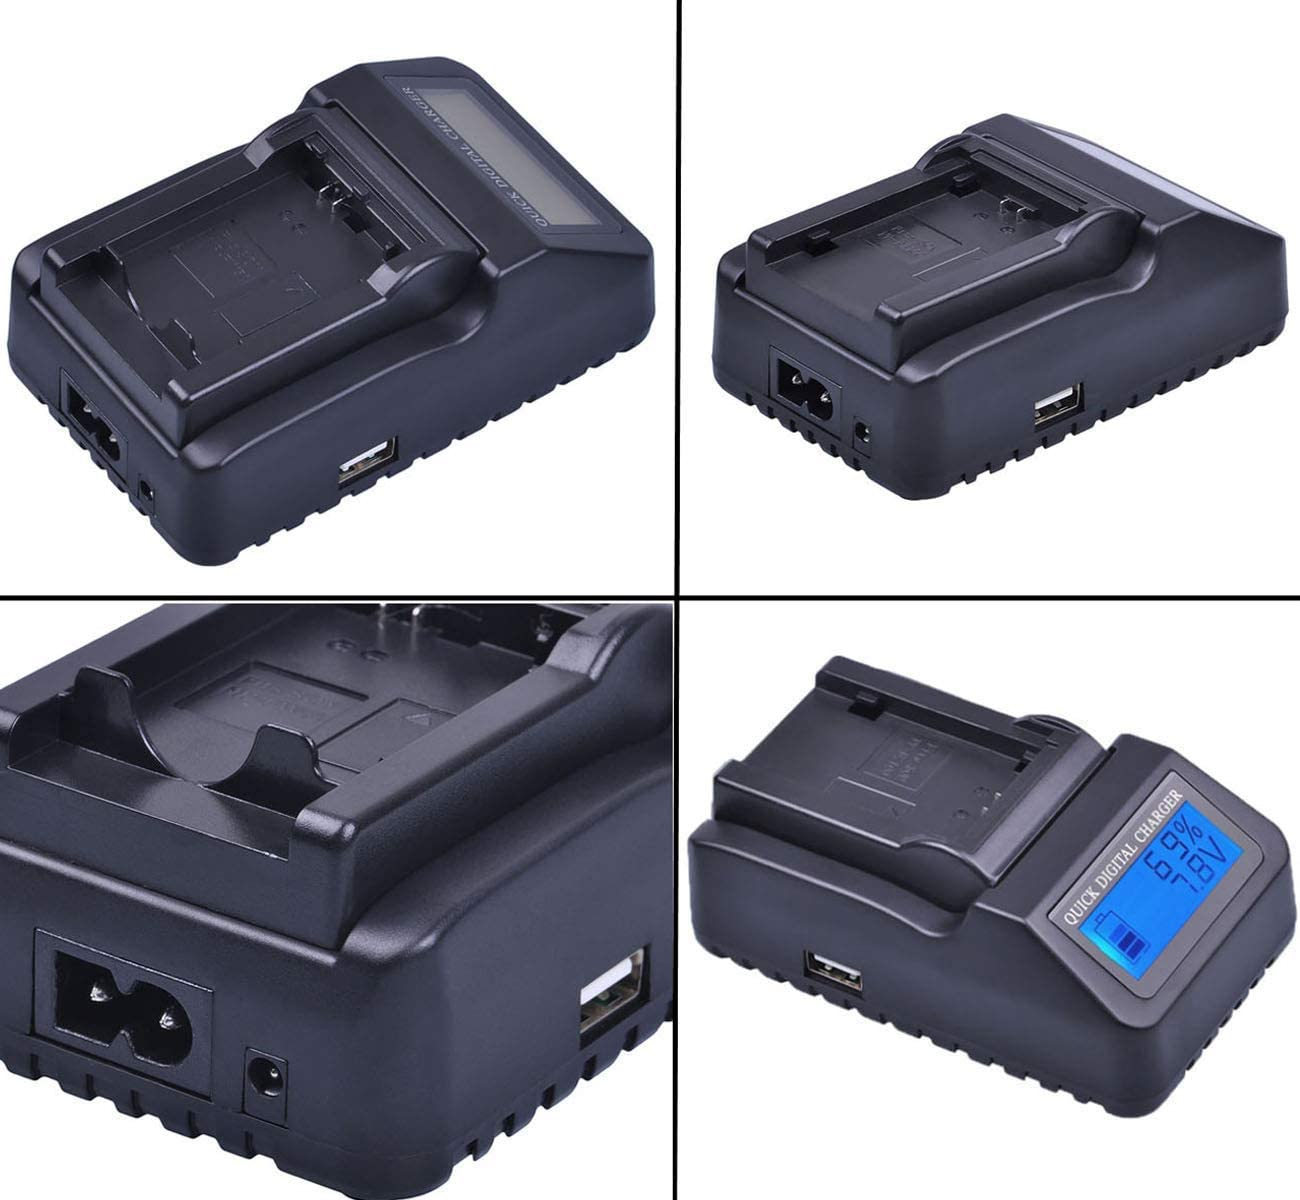 GZ-MG335 GZ-MG275 LCD Quick Battery Charger for JVC Everio GZ-MG255 GZ-MG365 Camcorder